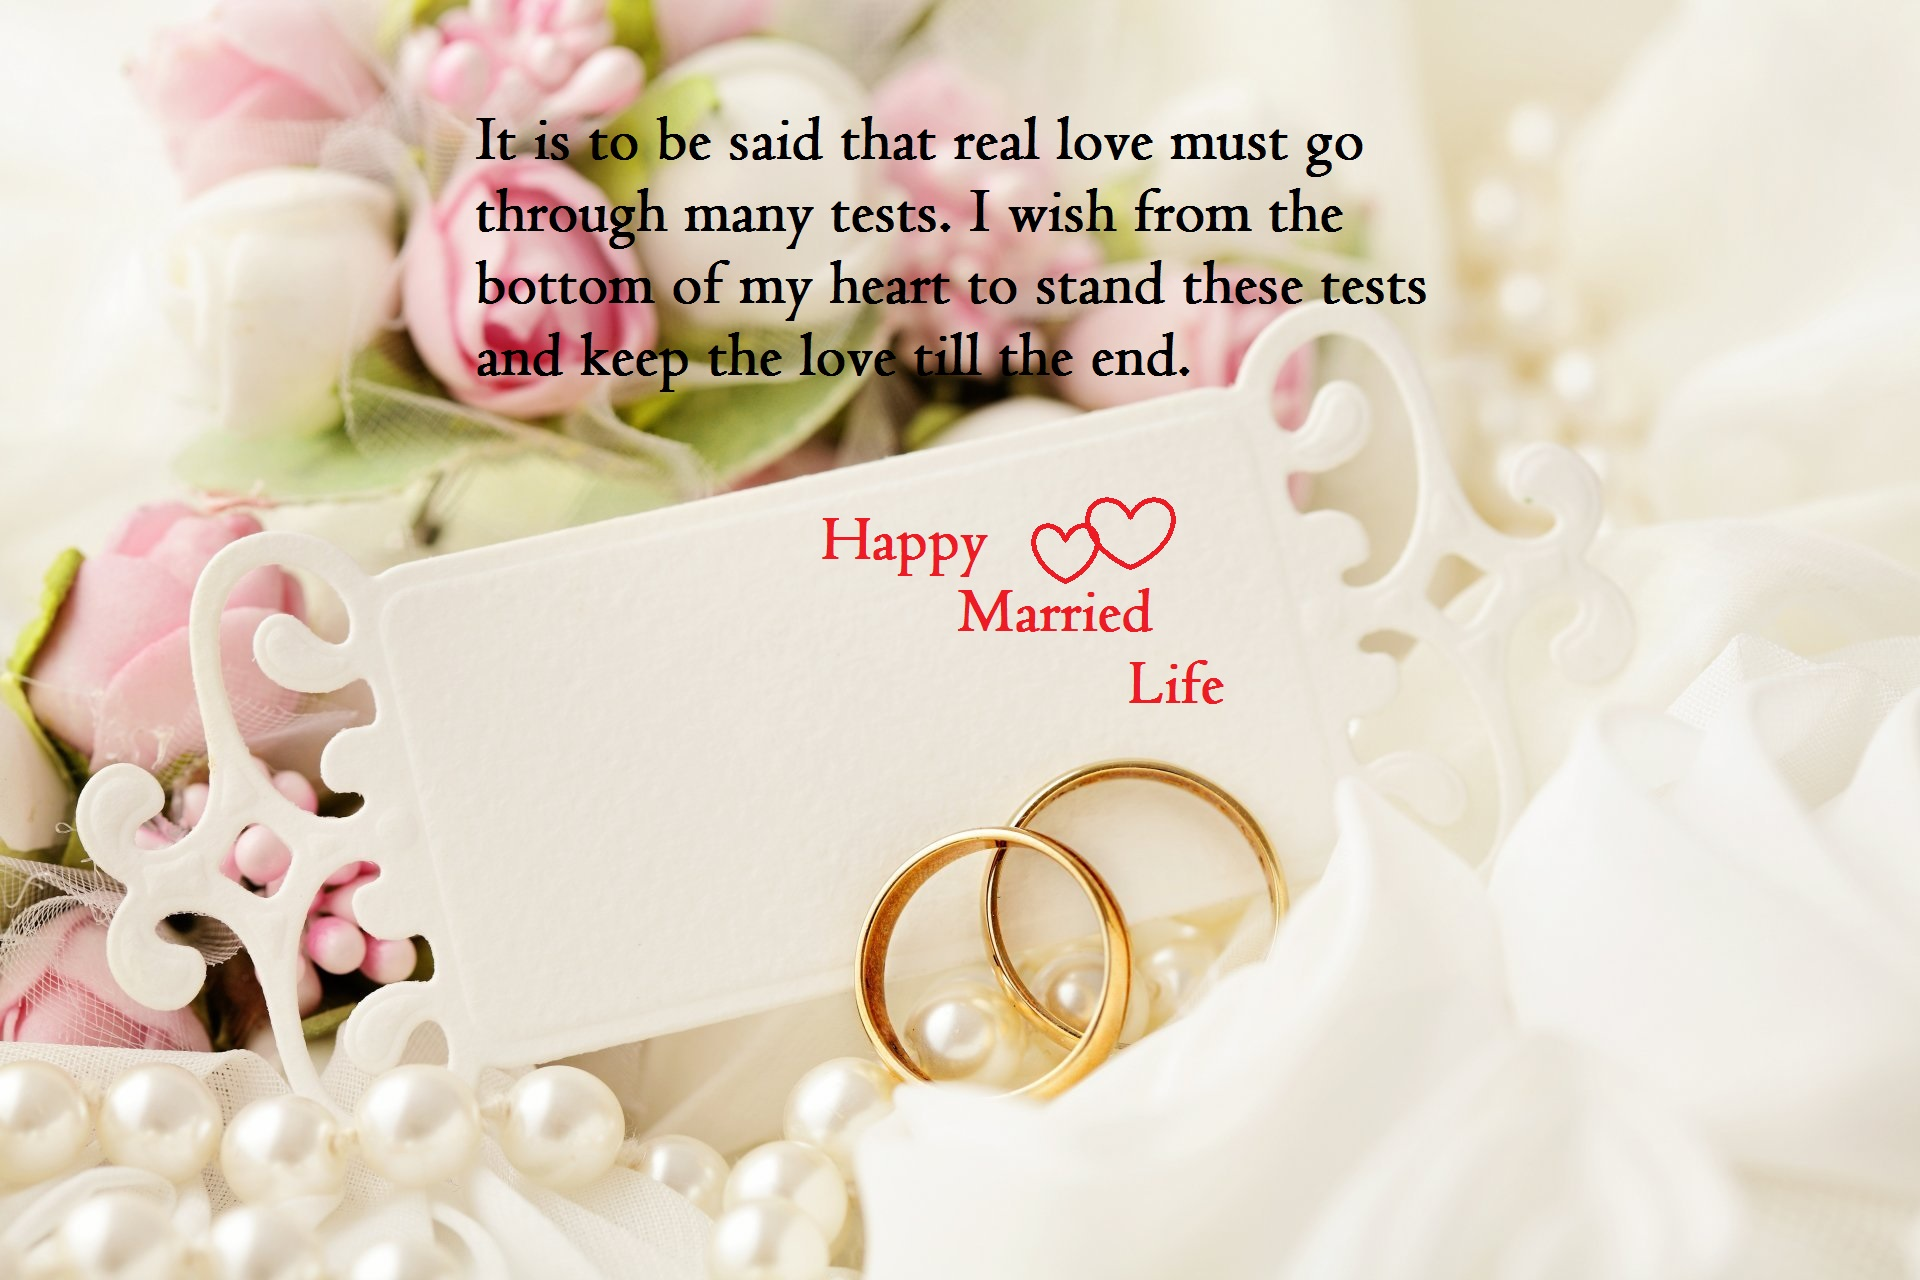 Best wishes wedding greeting cards 28 images artificial flowers best wishes wedding greeting cards happy married greeting cards wishes best wishes best wishes wedding greeting cards happy married greeting cards m4hsunfo